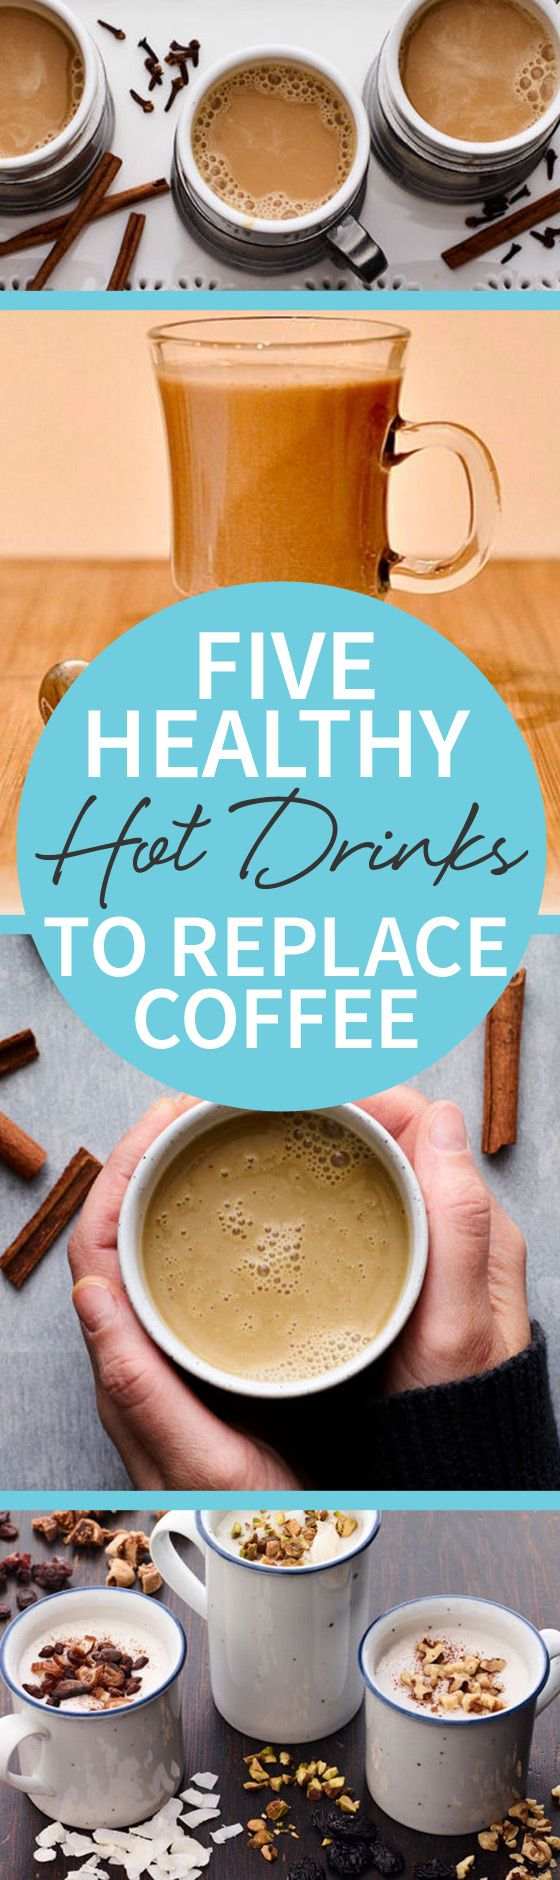 Five Healthy Hot Drinks To Replace Coffee Coffee recipes